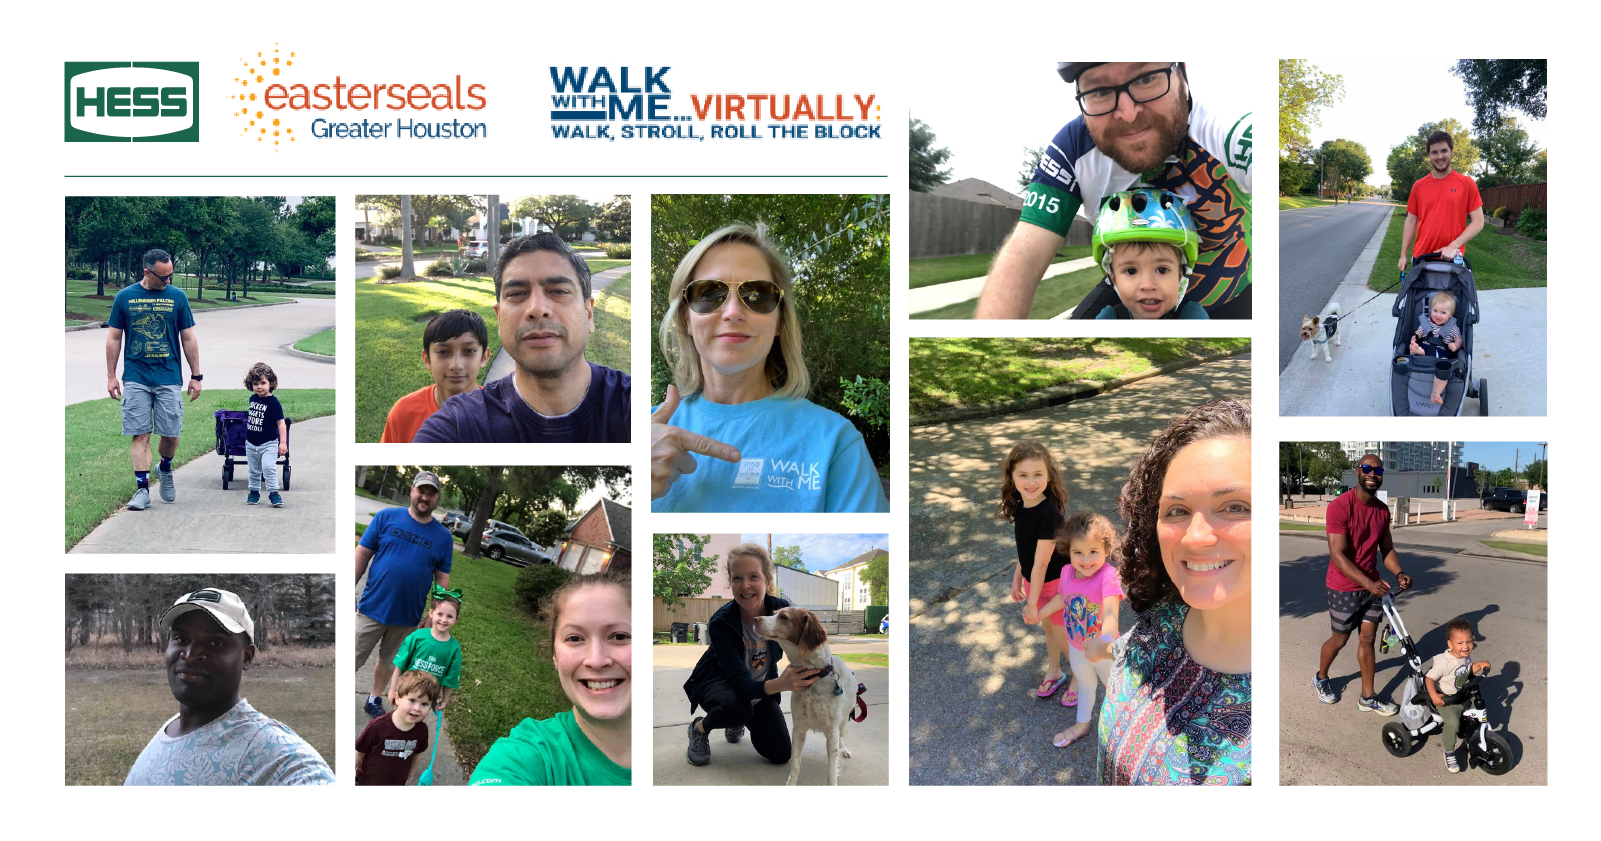 HESS-Easter Seals Walk With Me v1-01